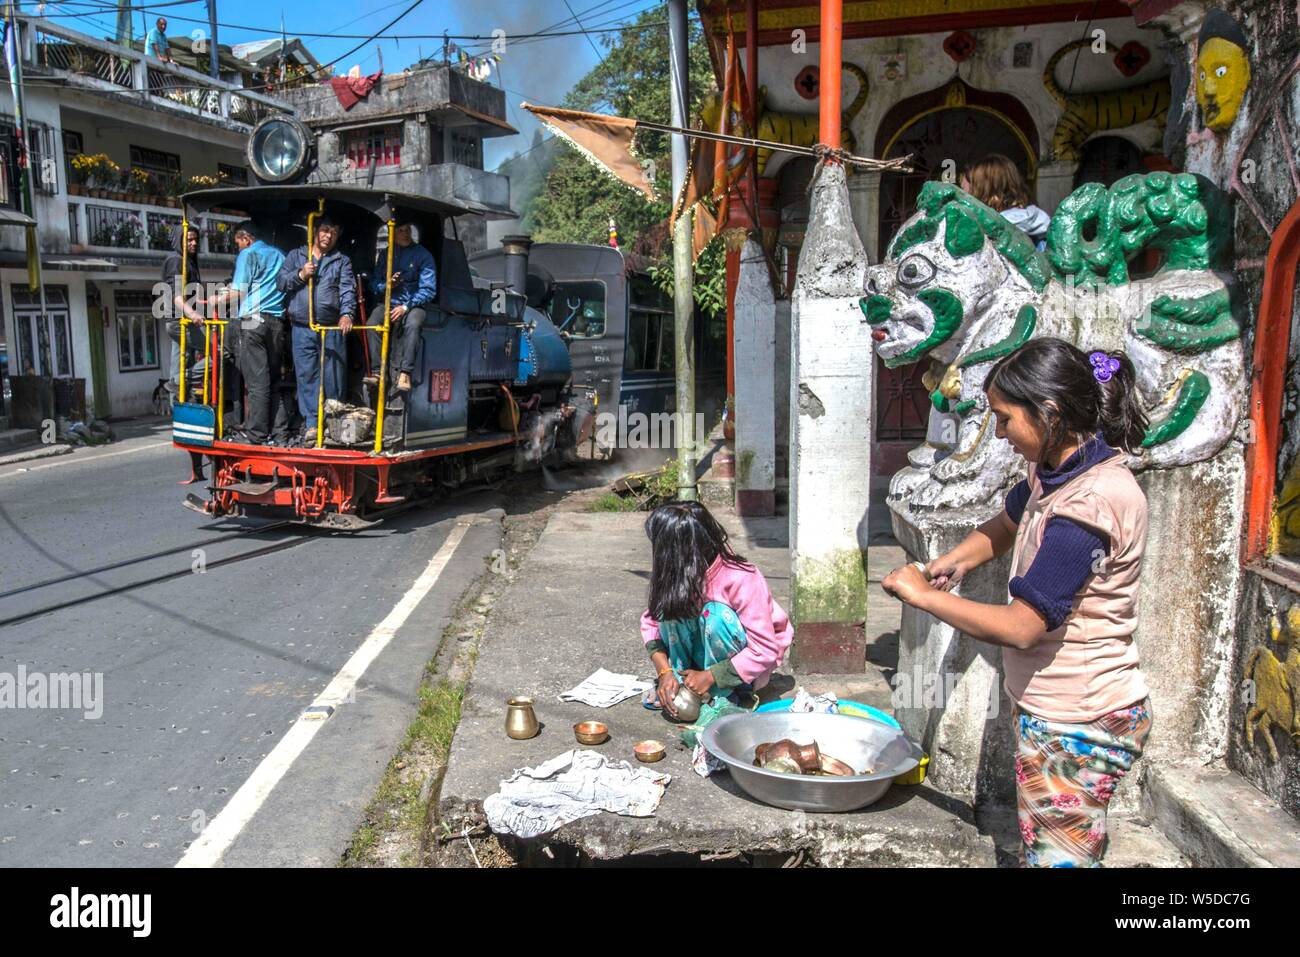 INDIA, DARJEELING. Historic narrow gauge toy train on its way from Darjeeling to Ghoom Stock Photo